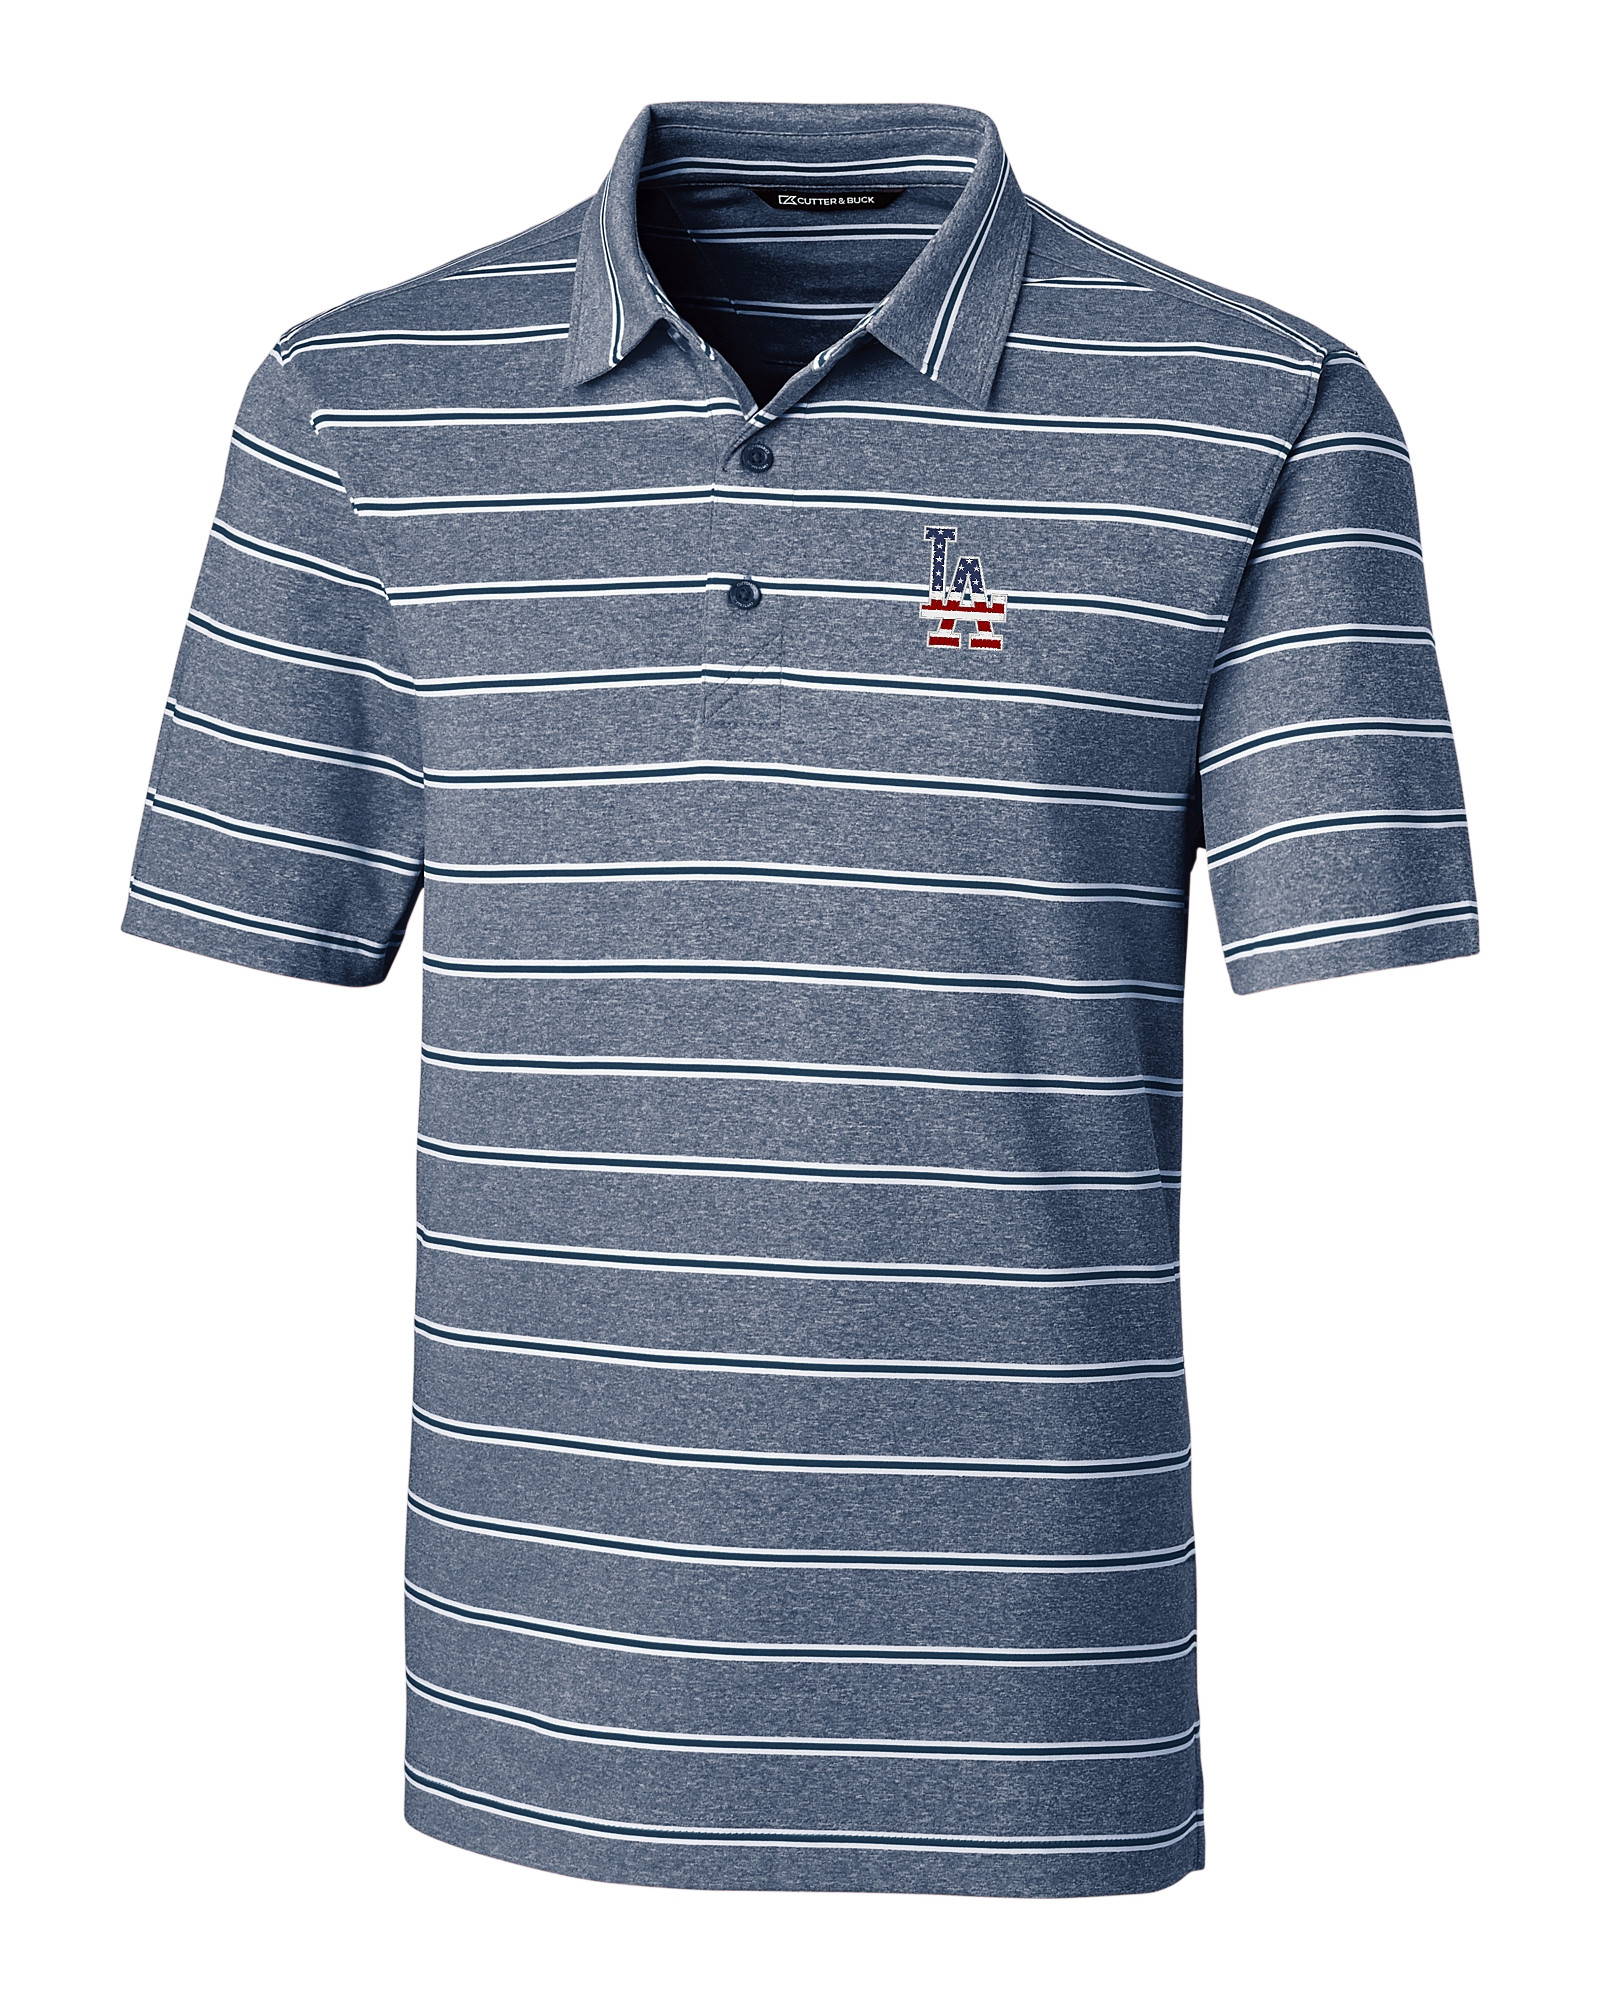 finest selection d53c9 5b410 Los Angeles Dodgers Americana Men's Forge Polo Heather Stripe